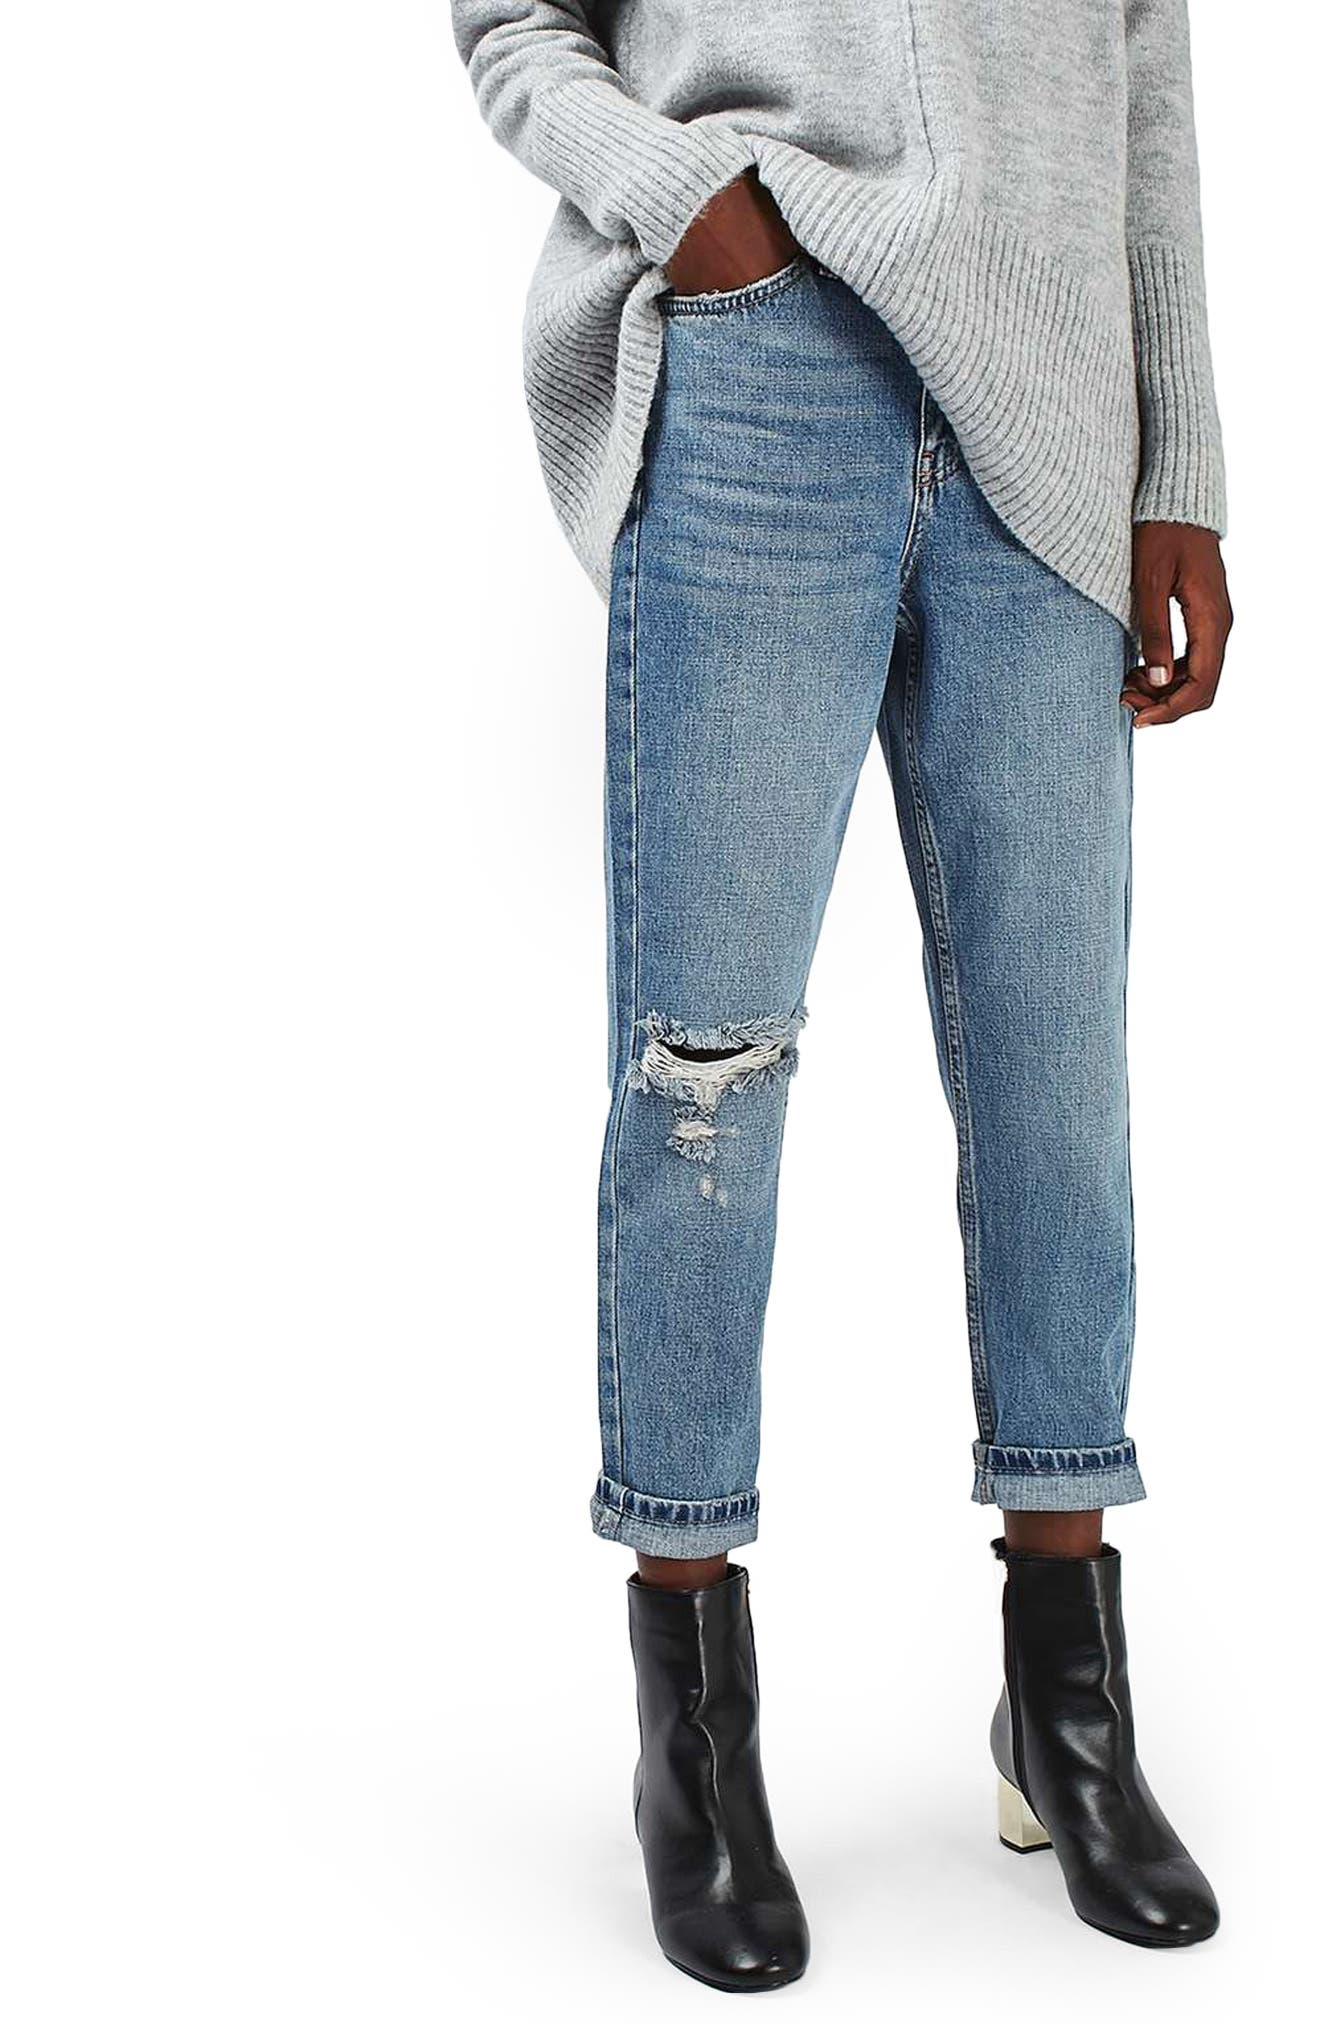 Alternate Image 1 Selected - Topshop Ripped Mom Jeans (Petite)